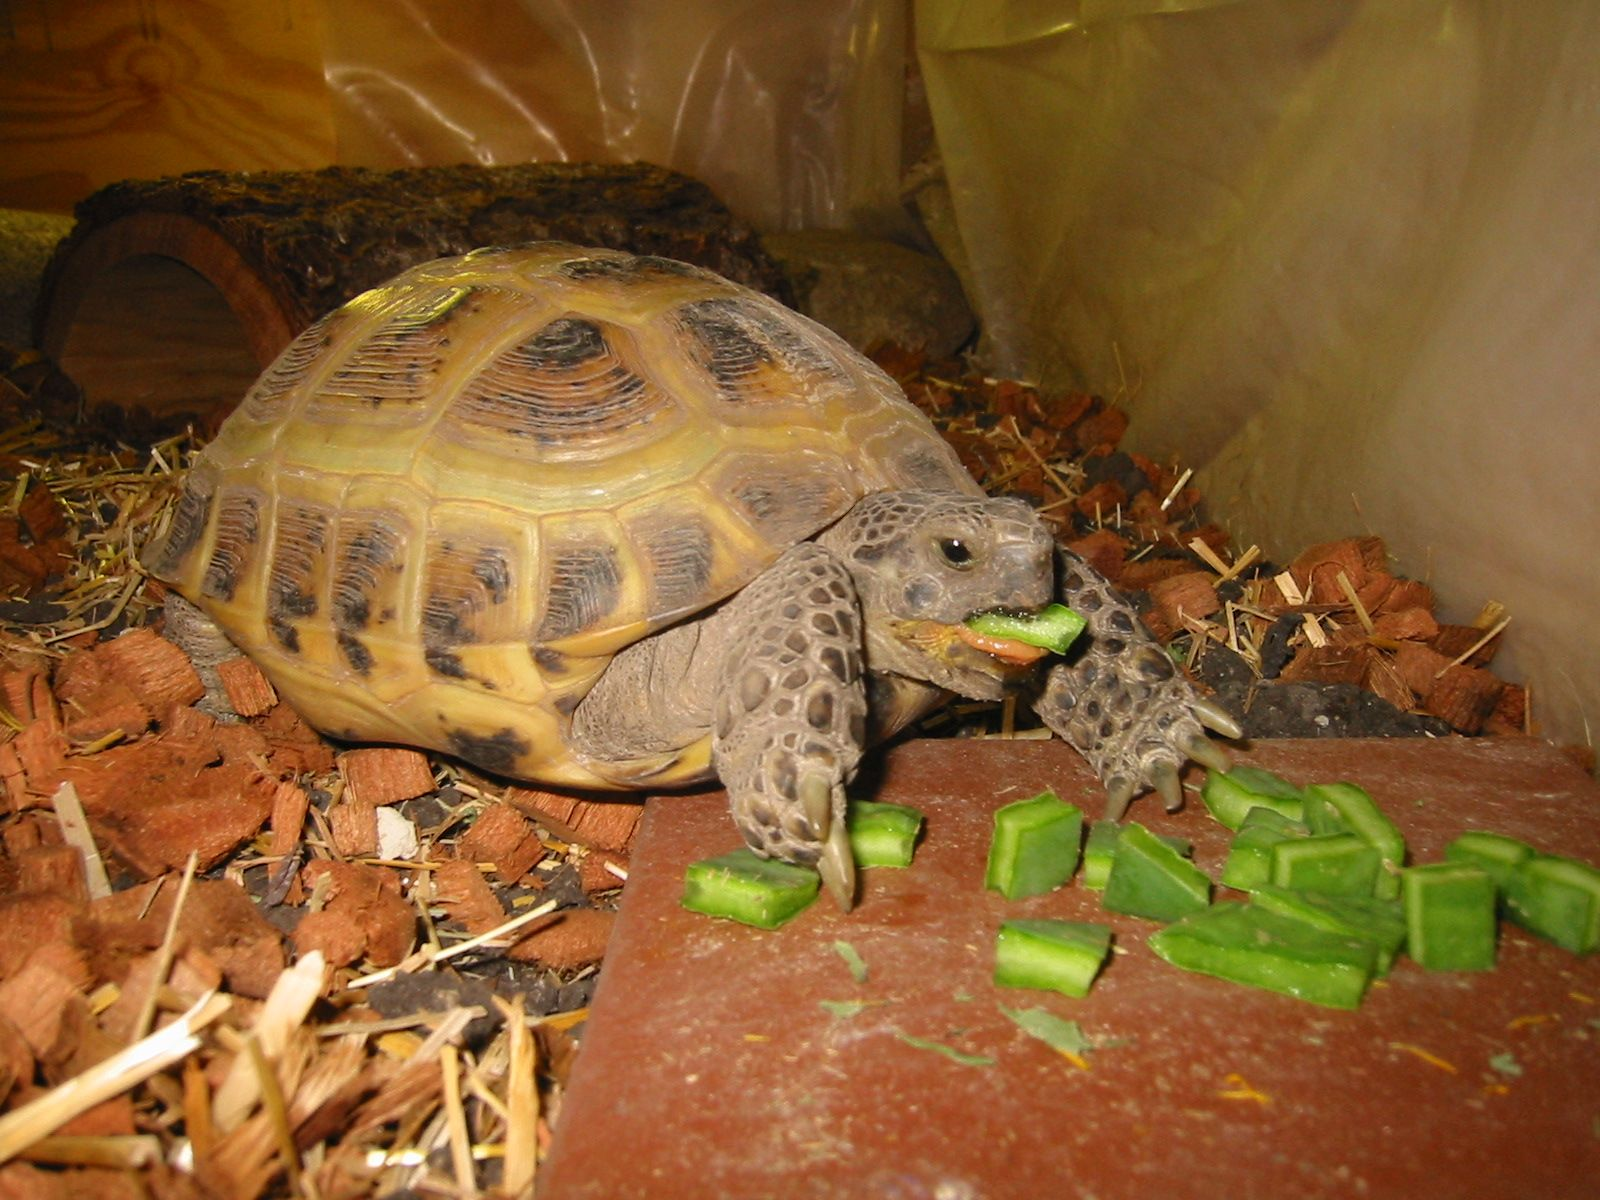 feeding the turtle with healthy food